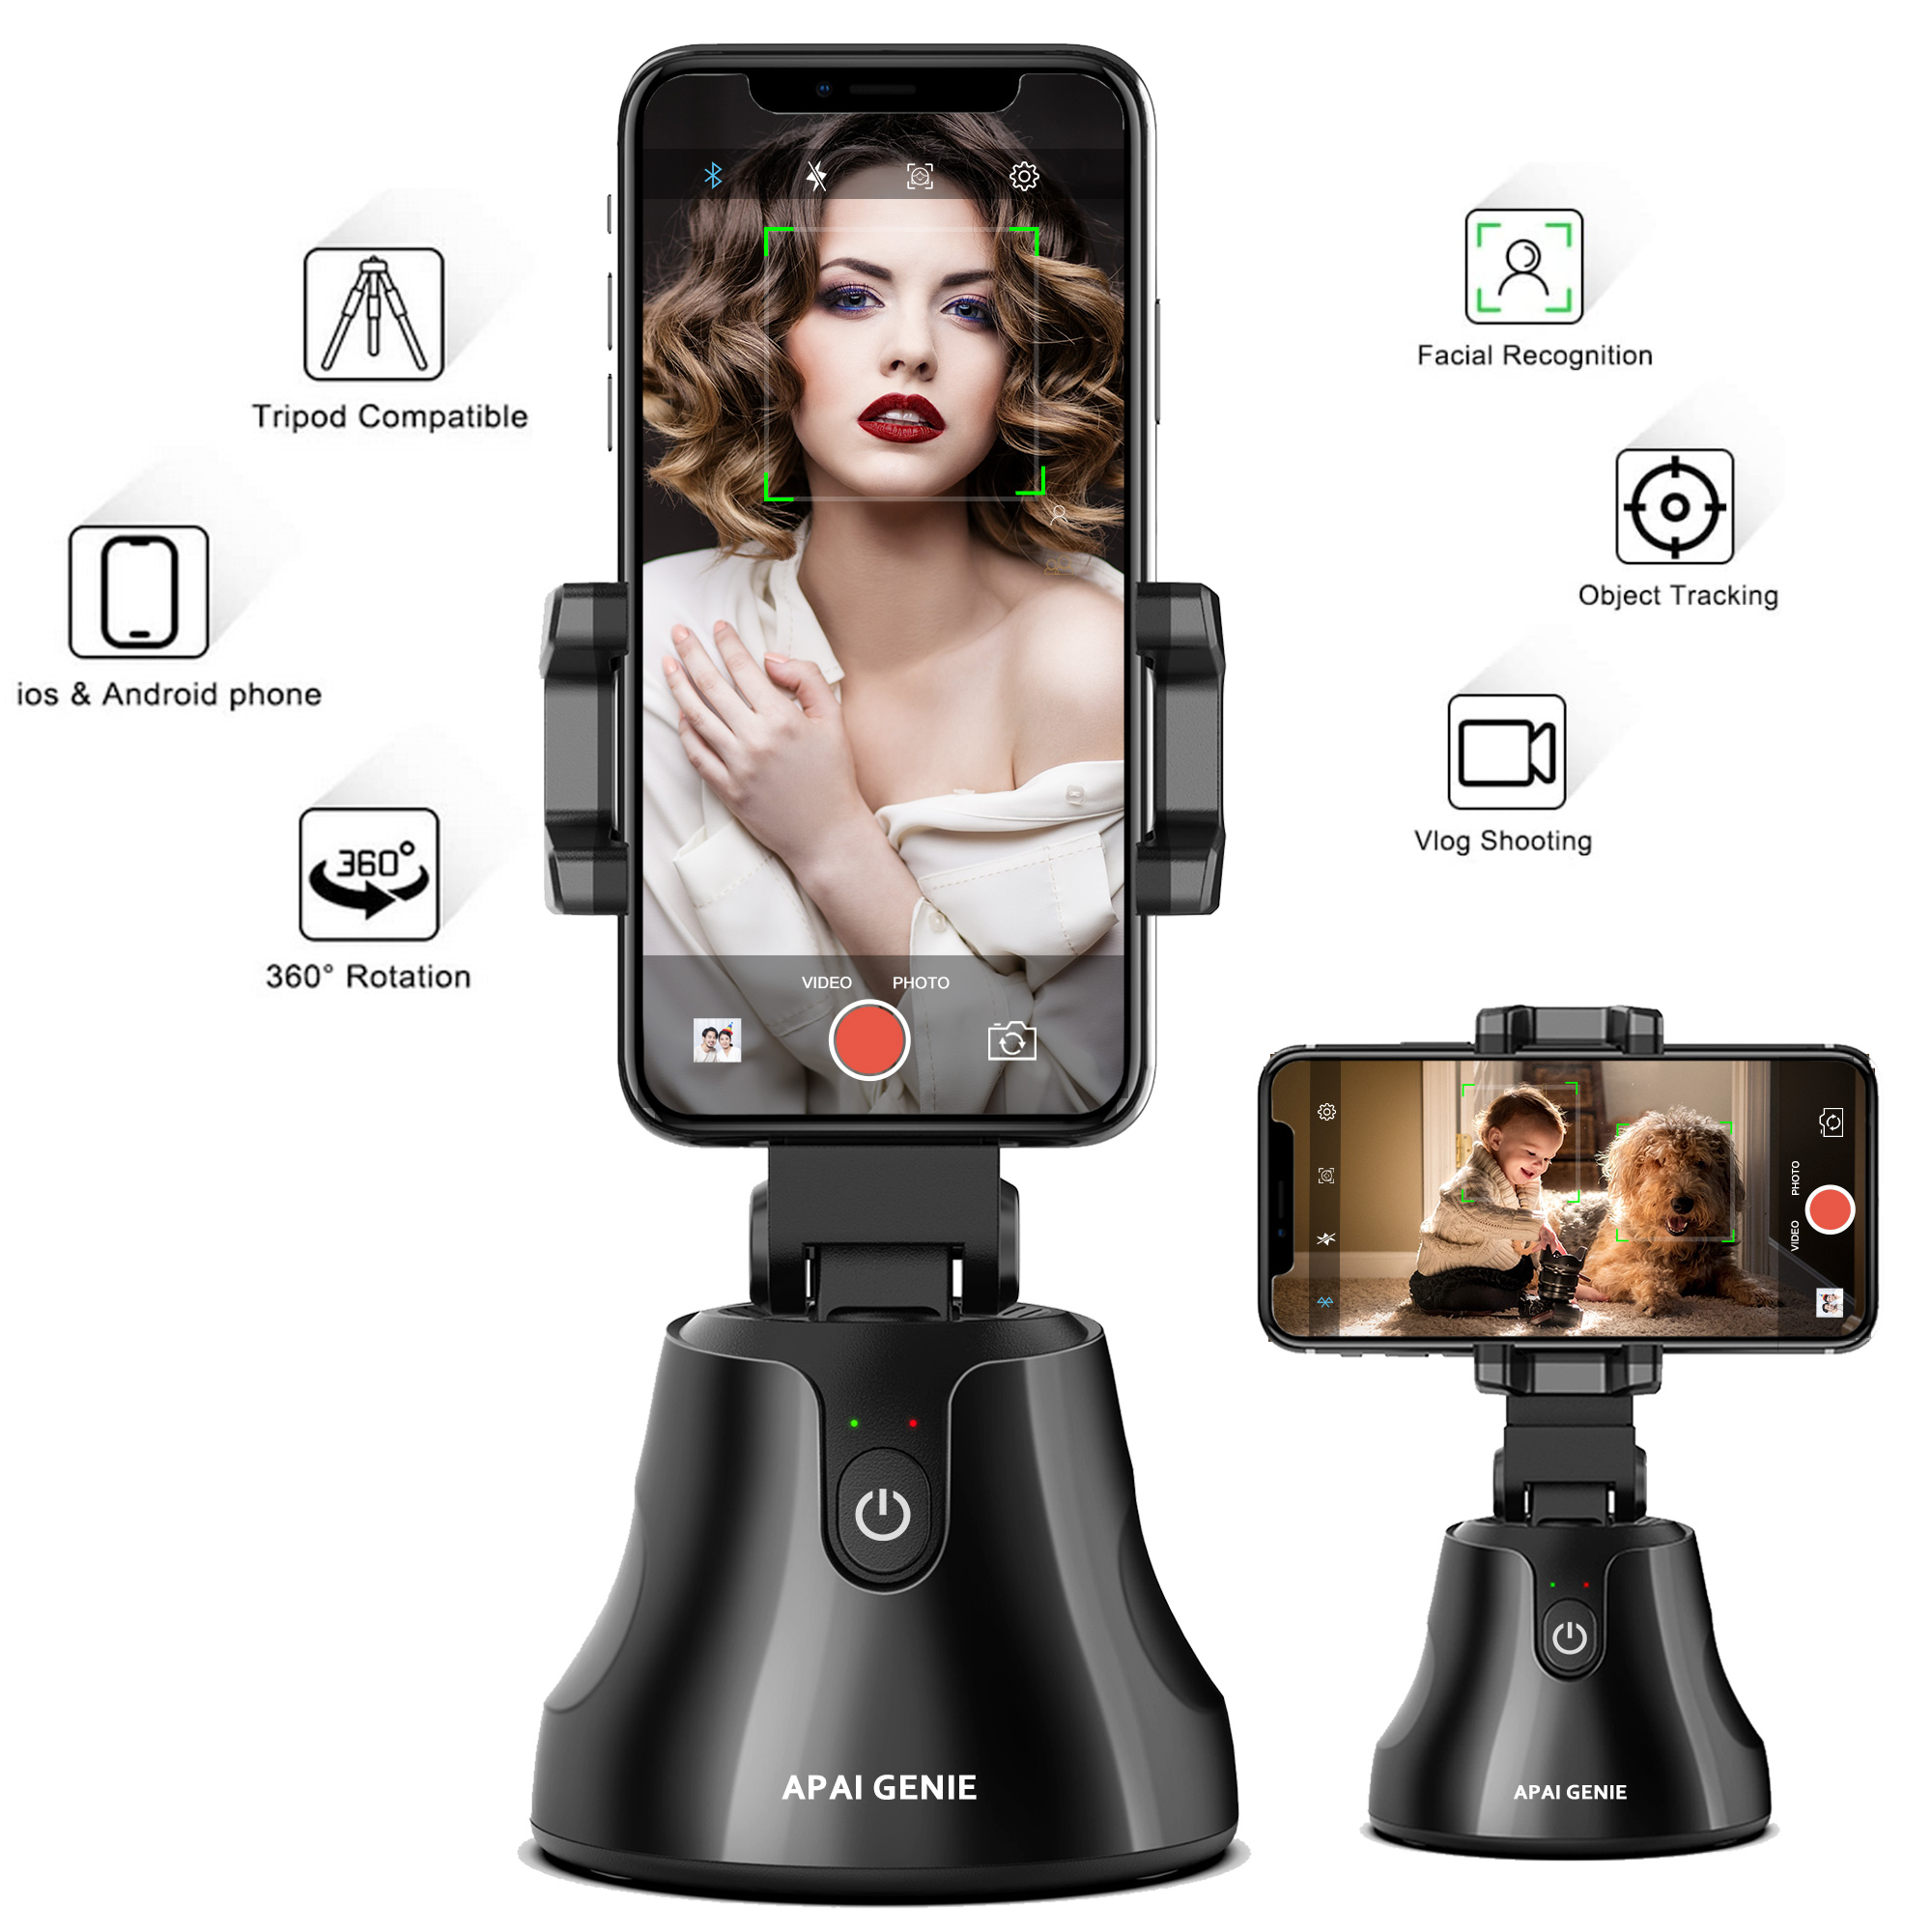 Video//Vlog Shooting Gimbal Robot Cameraman for iPhone//Android RUMIA Rotation Auto Face//Object Tracking Holder Intelligent Follow Portable Smart Selfie Stick Smart Tracking Holder